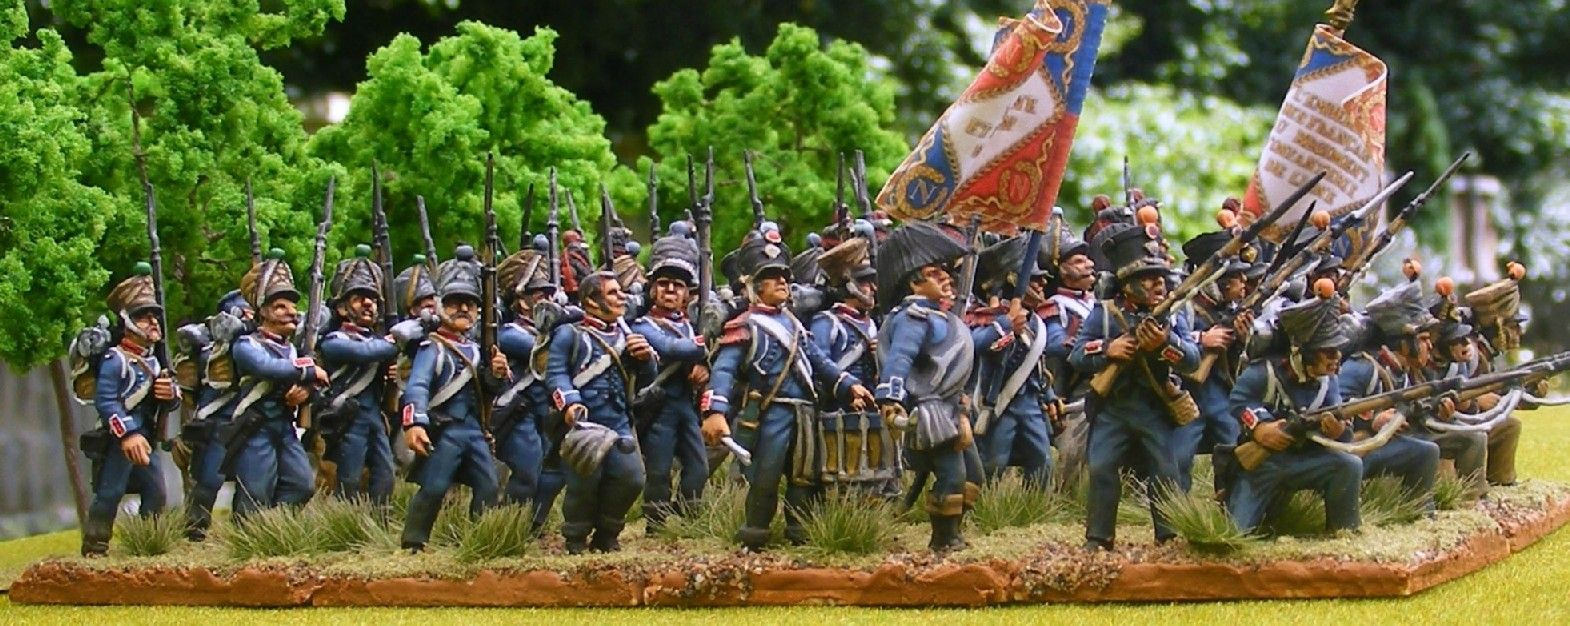 Victrix French Infantry - Painted as Light Infantry